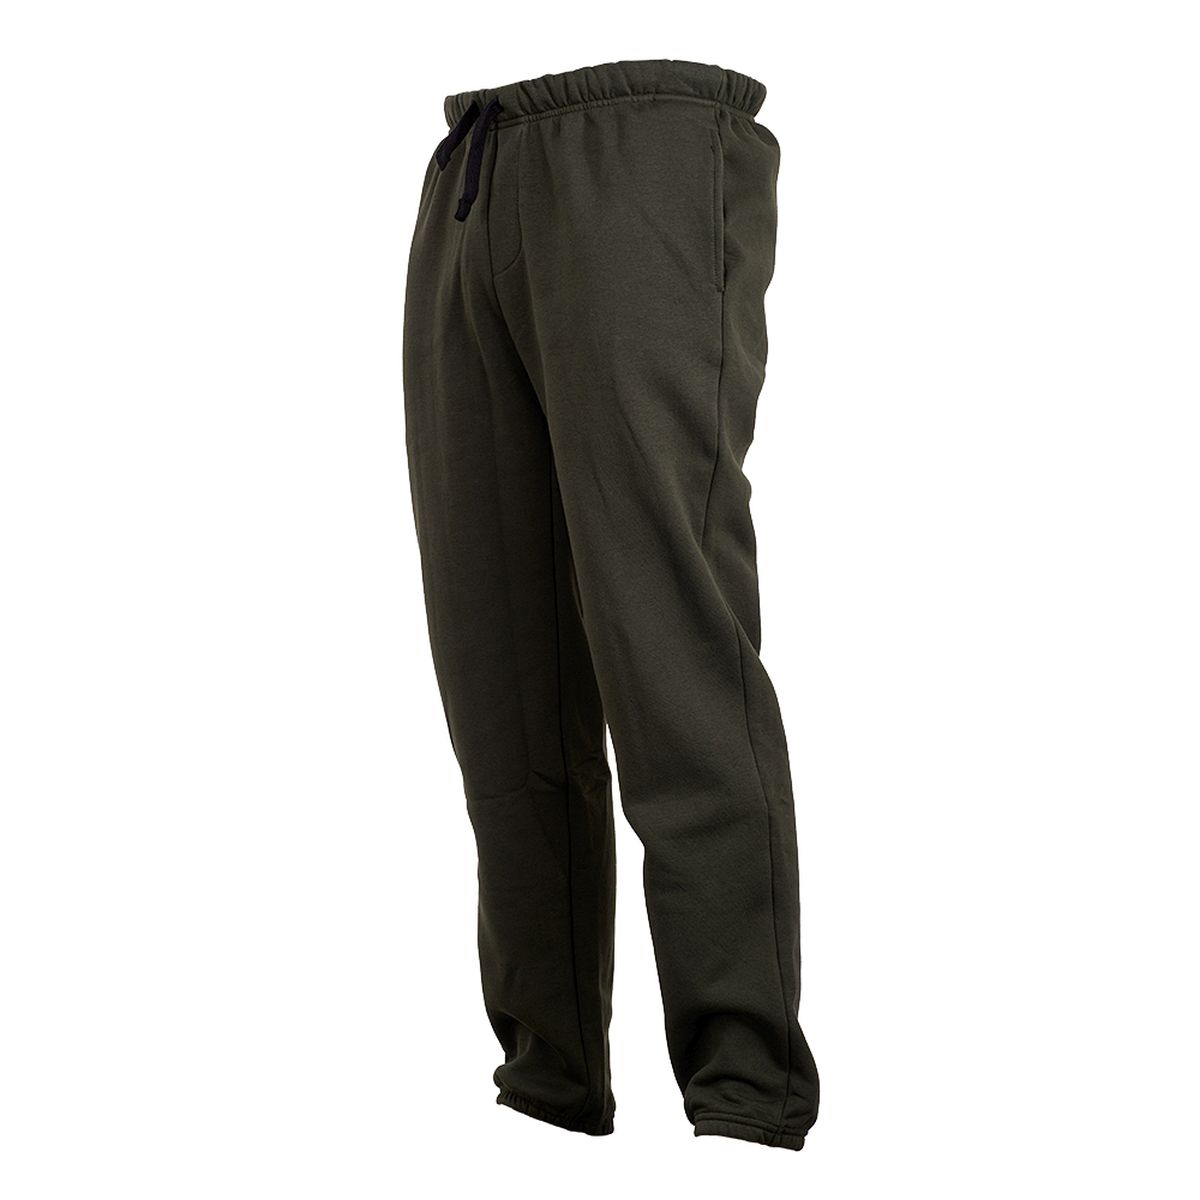 CARPSTYLE BANK JOGGERS - L